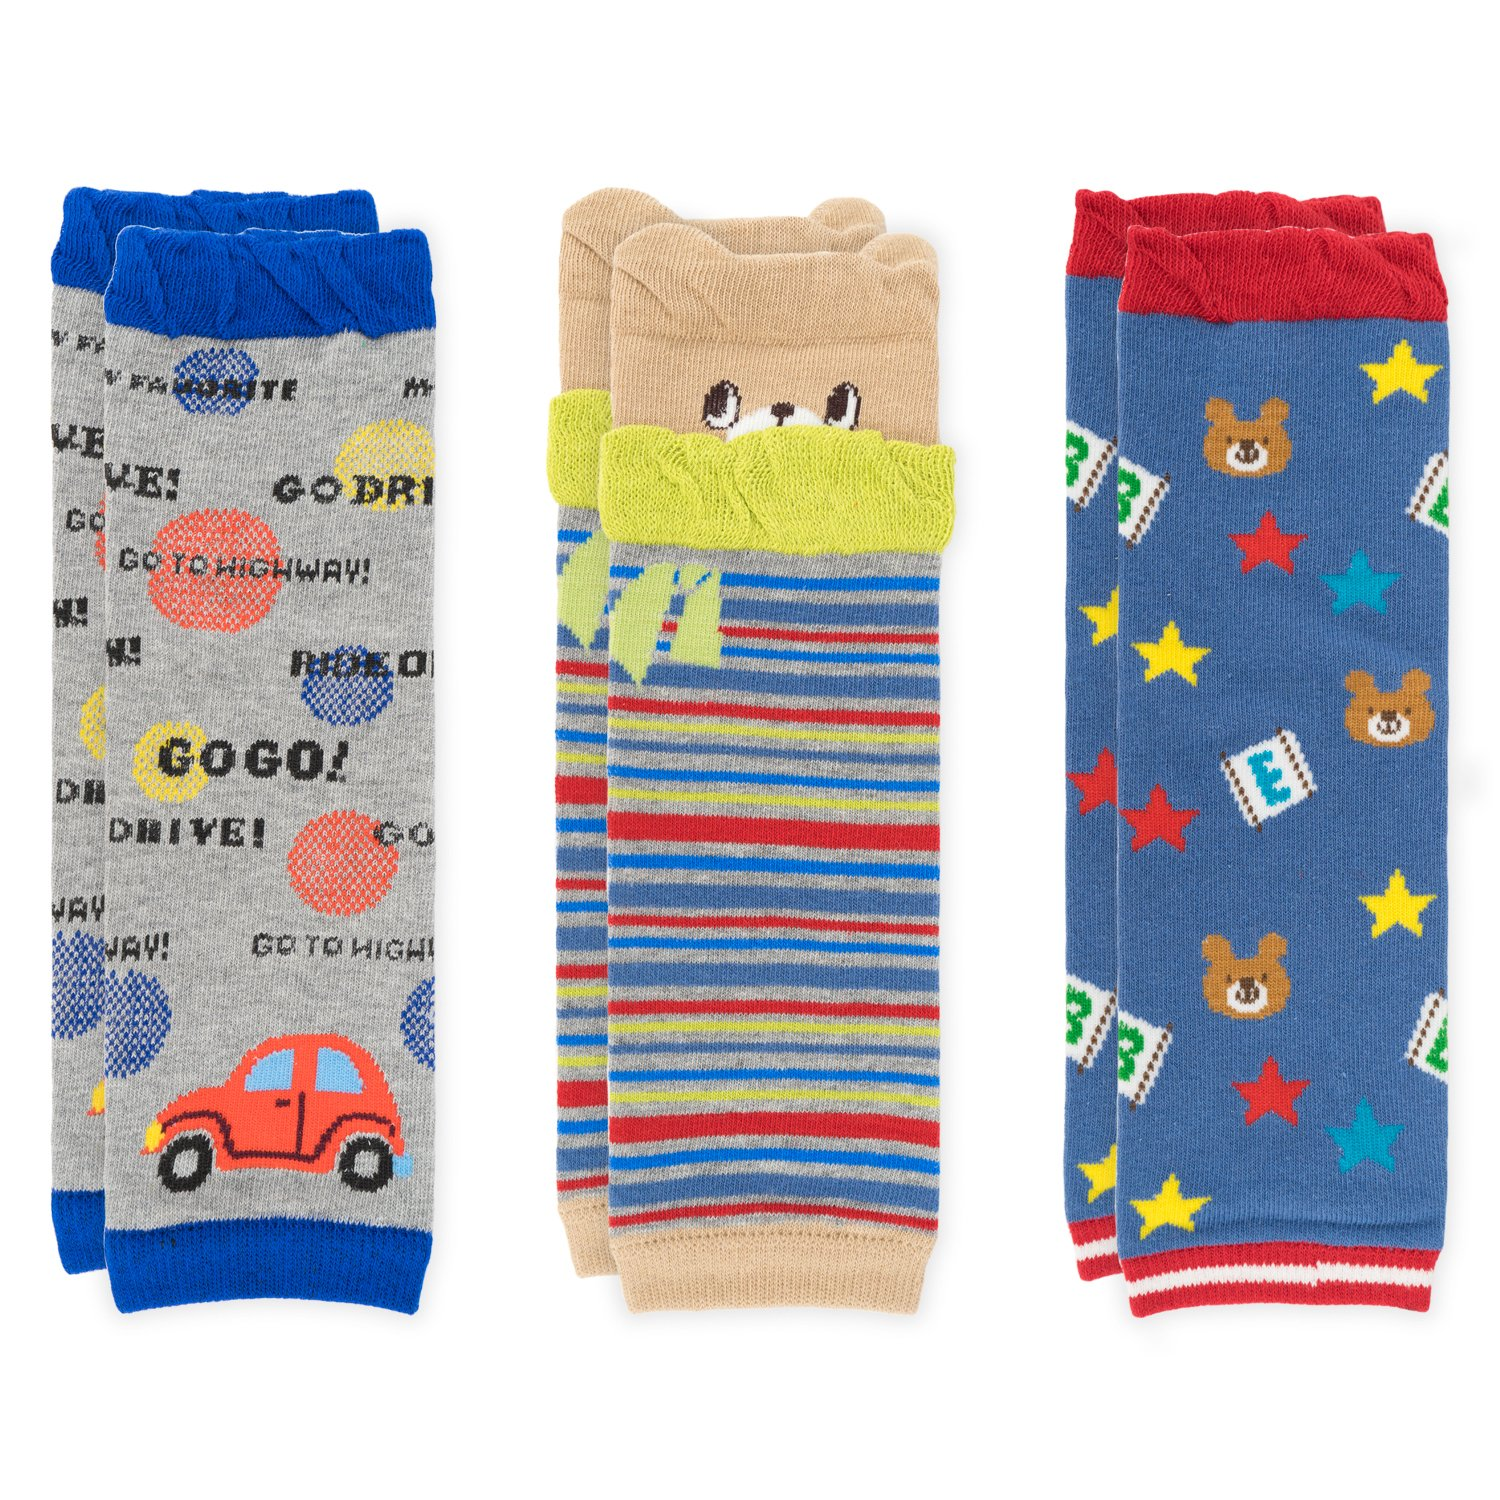 Ateid Infant Toddler Long Leg Warmers Knee Protecter Cotton for 6-36 Months Pack of 3